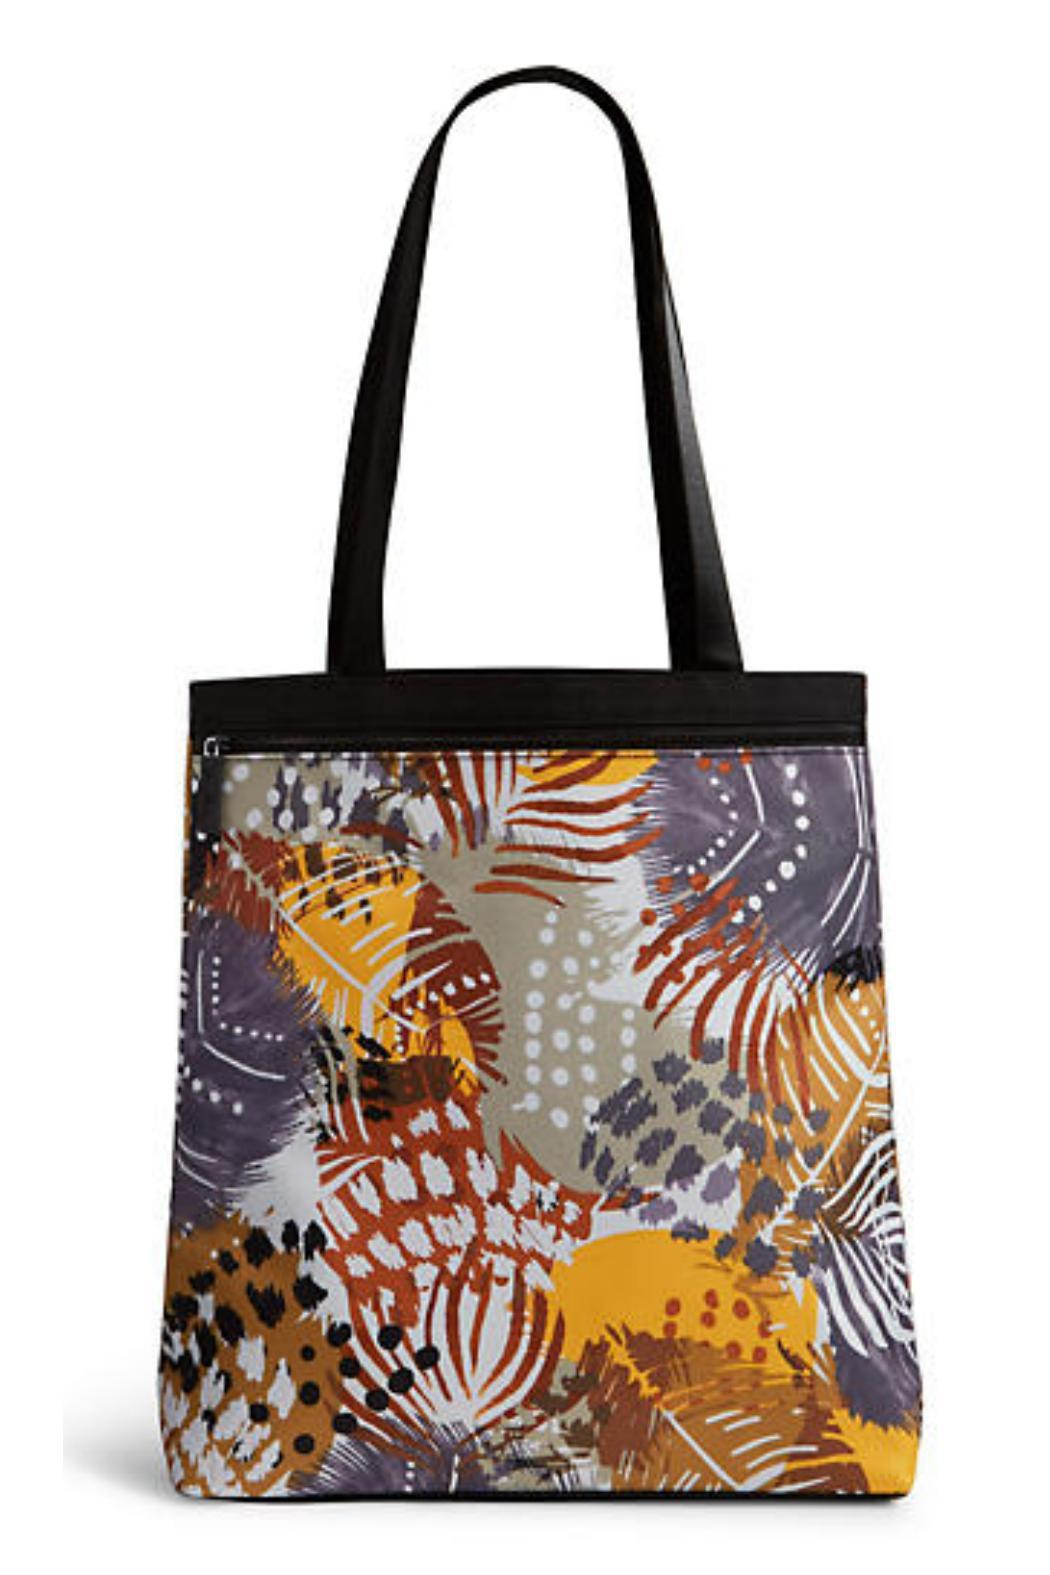 0622f567e5 Vera Bradley Painted Feathers Tote from Kentucky by Mimi s Gift ...